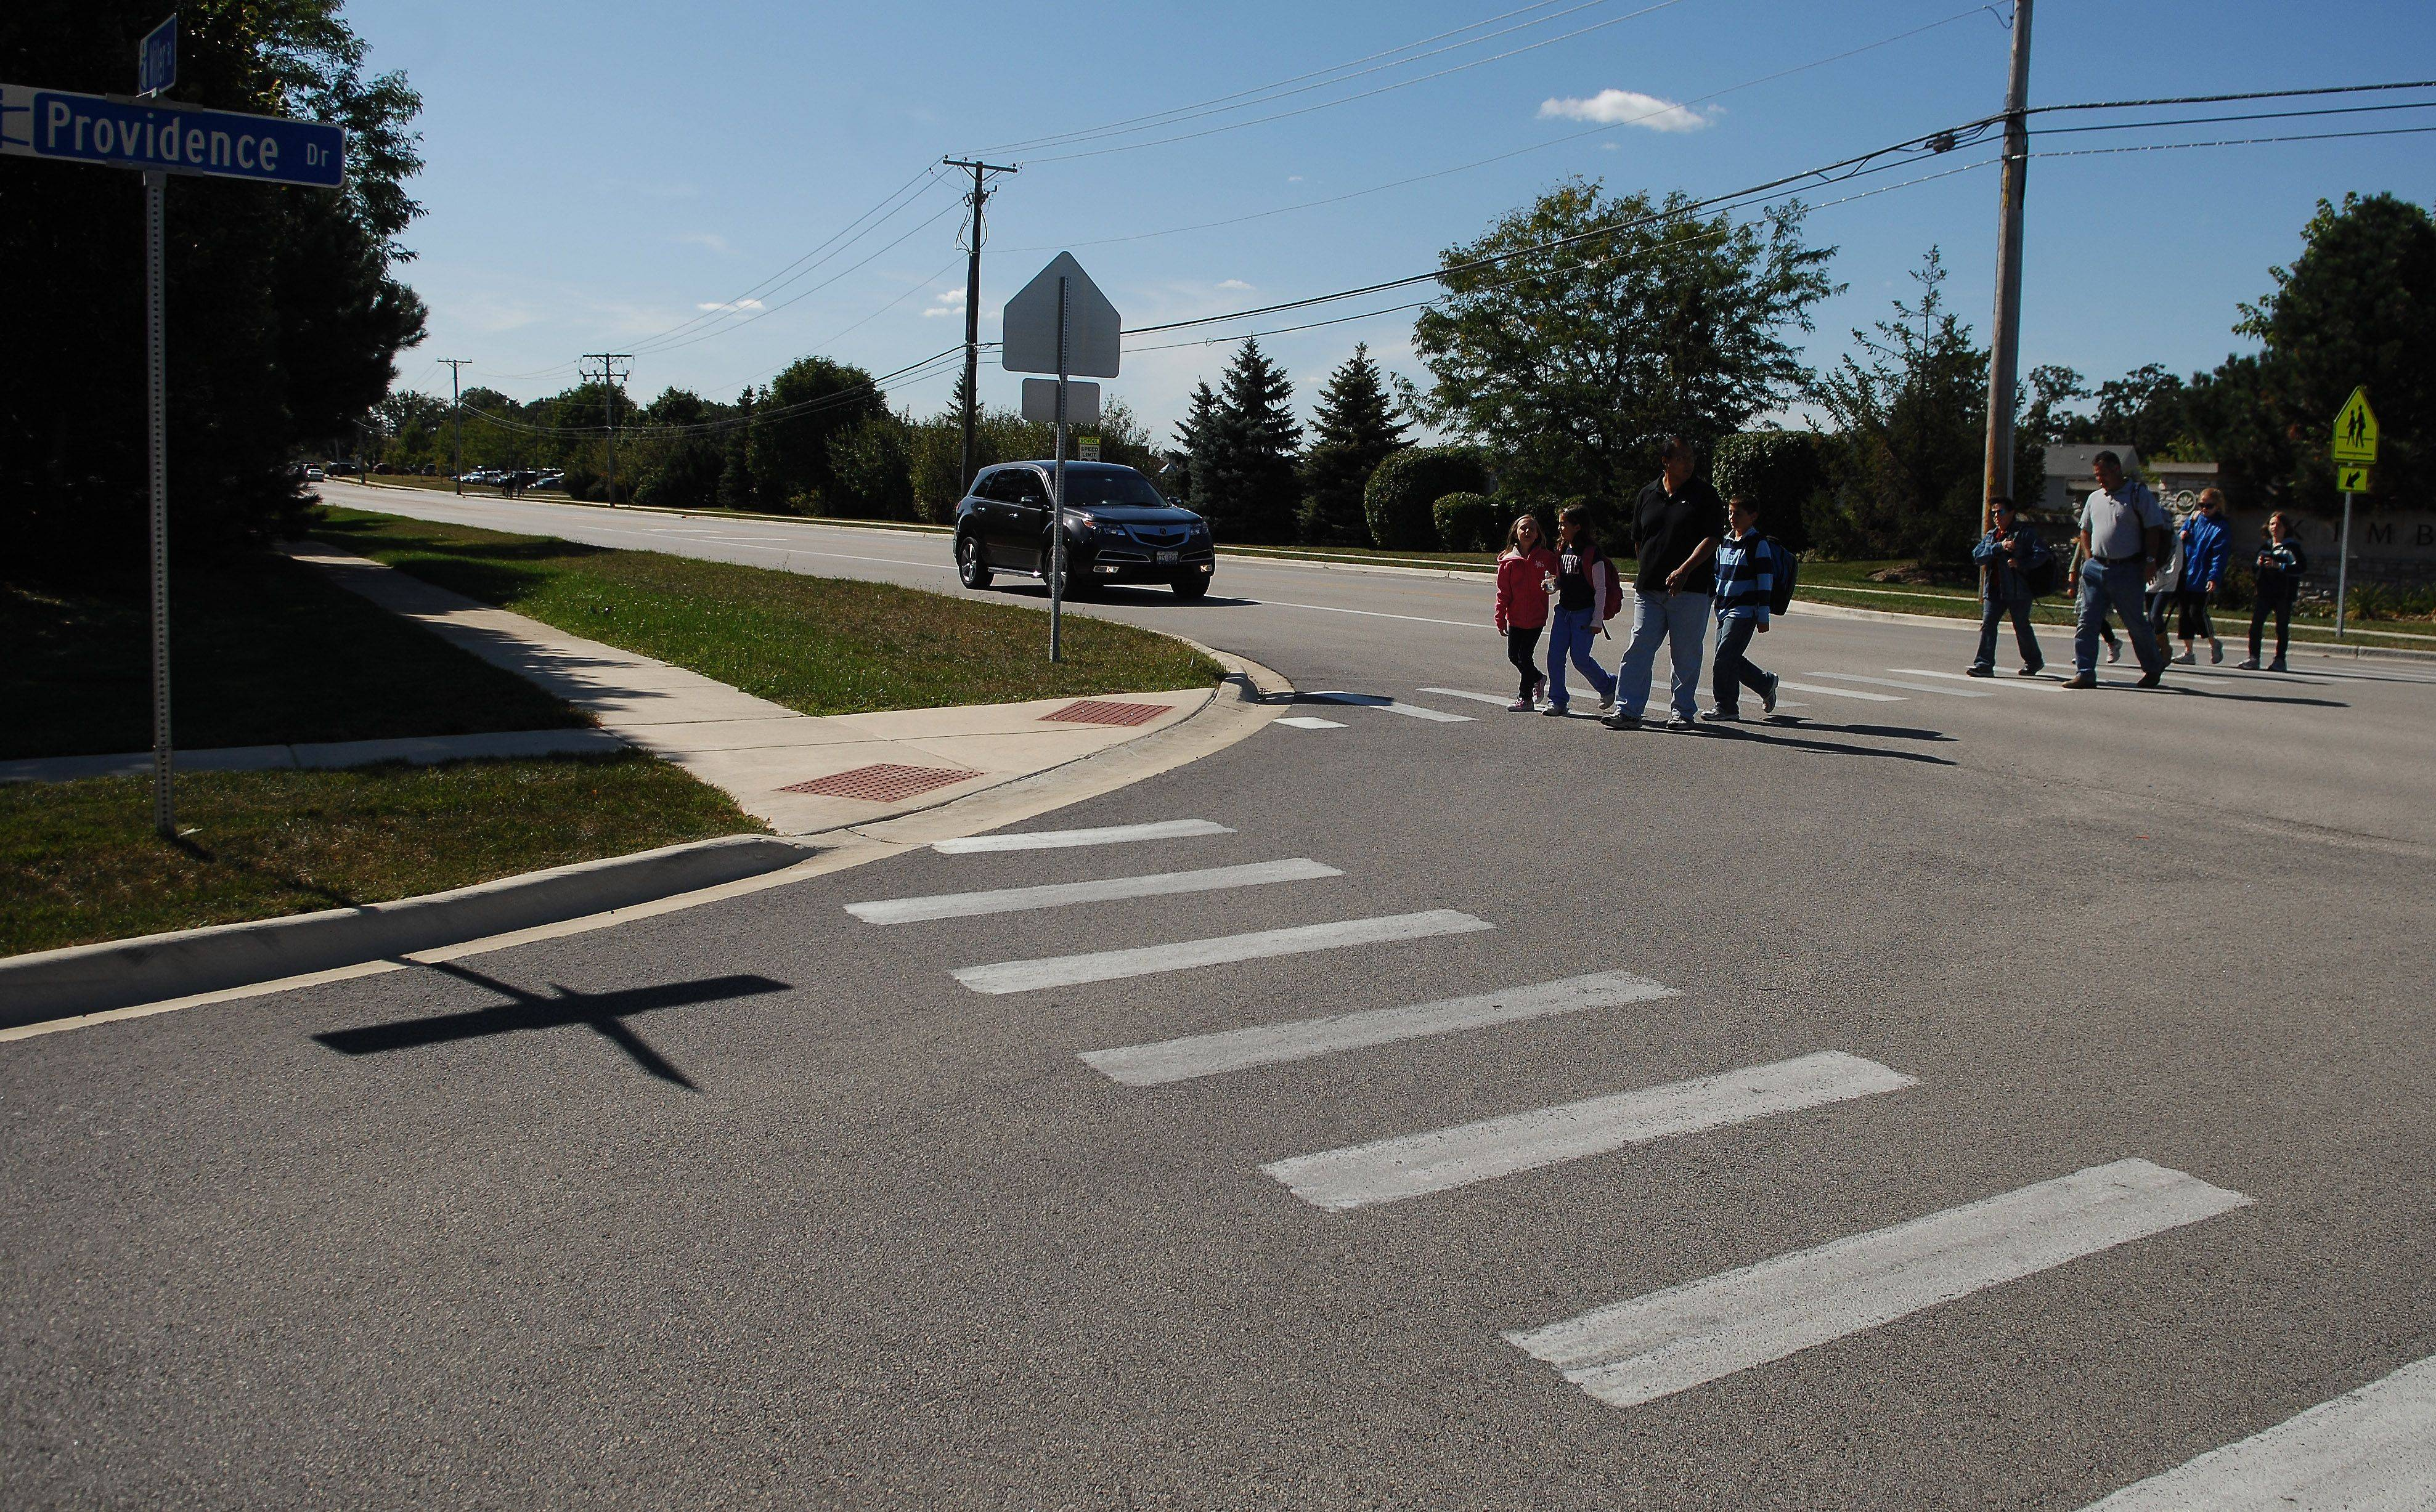 Carpentersville authorities are going to put yield signs by a crosswalk at Miller Road and Providence Drive near Liberty School. At least one parent says the signs will never be a substitute for the crossing guard who worked there for years and knew the children by name.